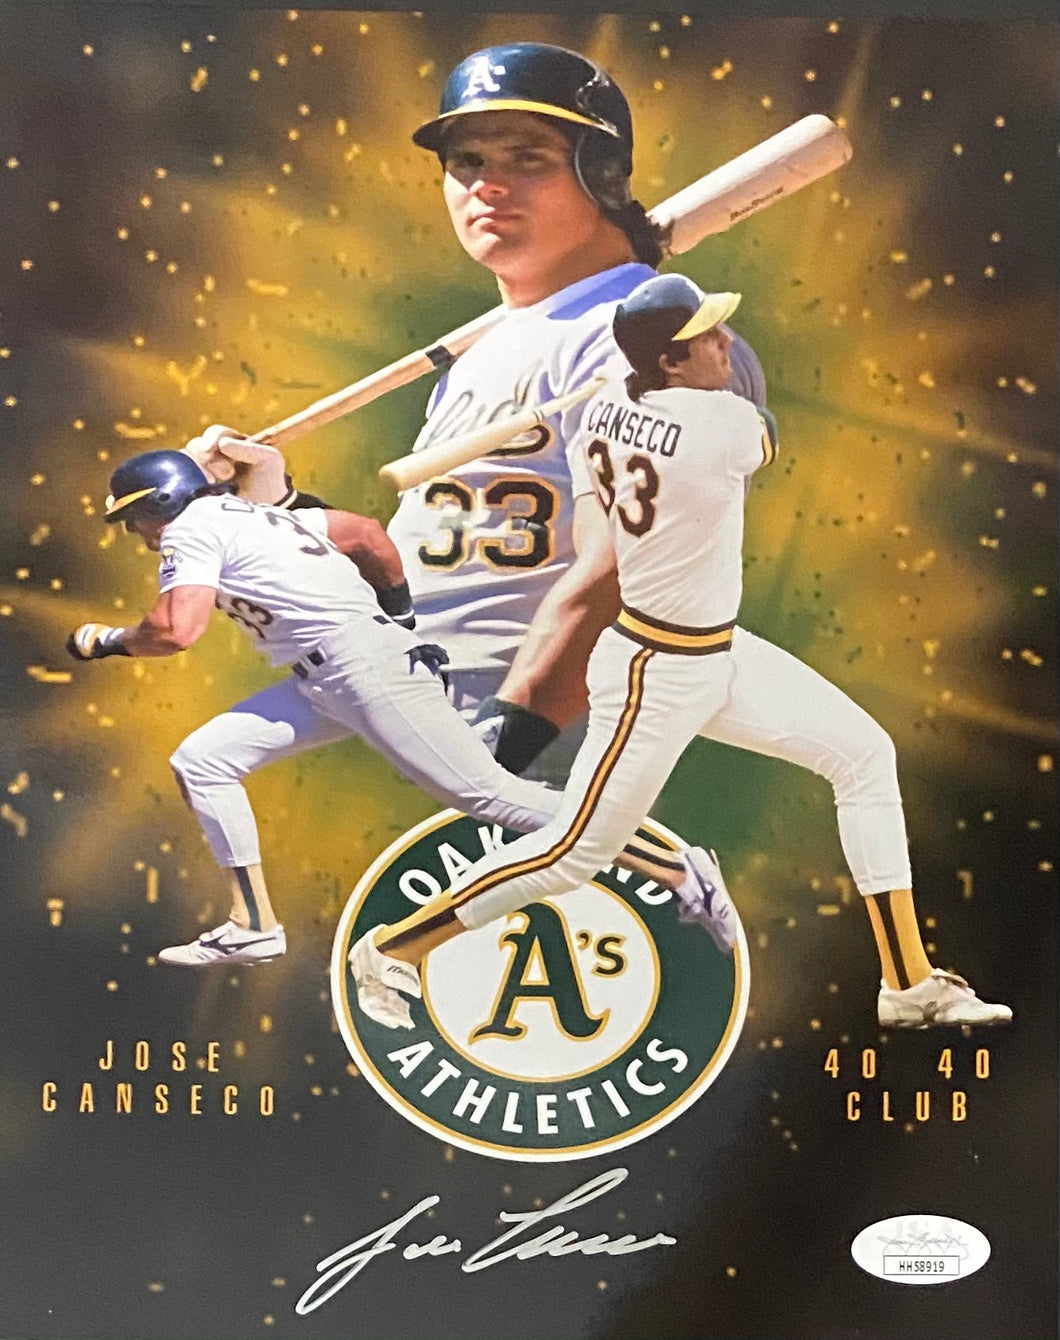 Jose Canseco Oakland Athletics Signed 8x10 Collage With JSA COA